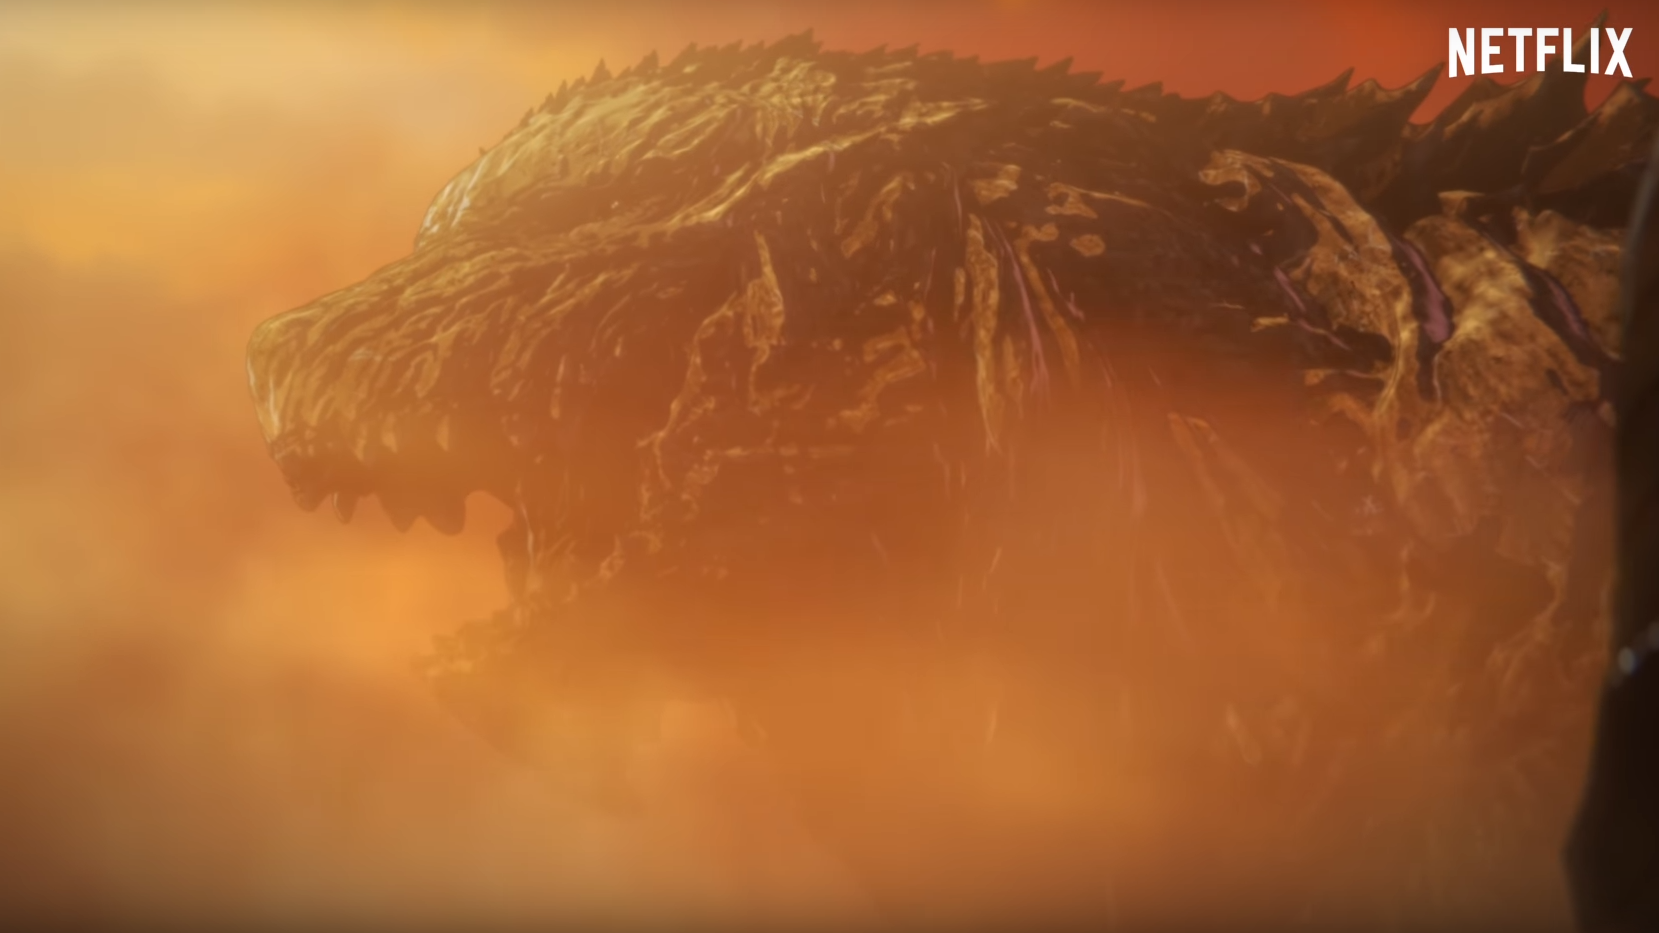 Get Ready For The Ultimate Kaiju Battle With This Godzilla: Monster Planet Release Trailer